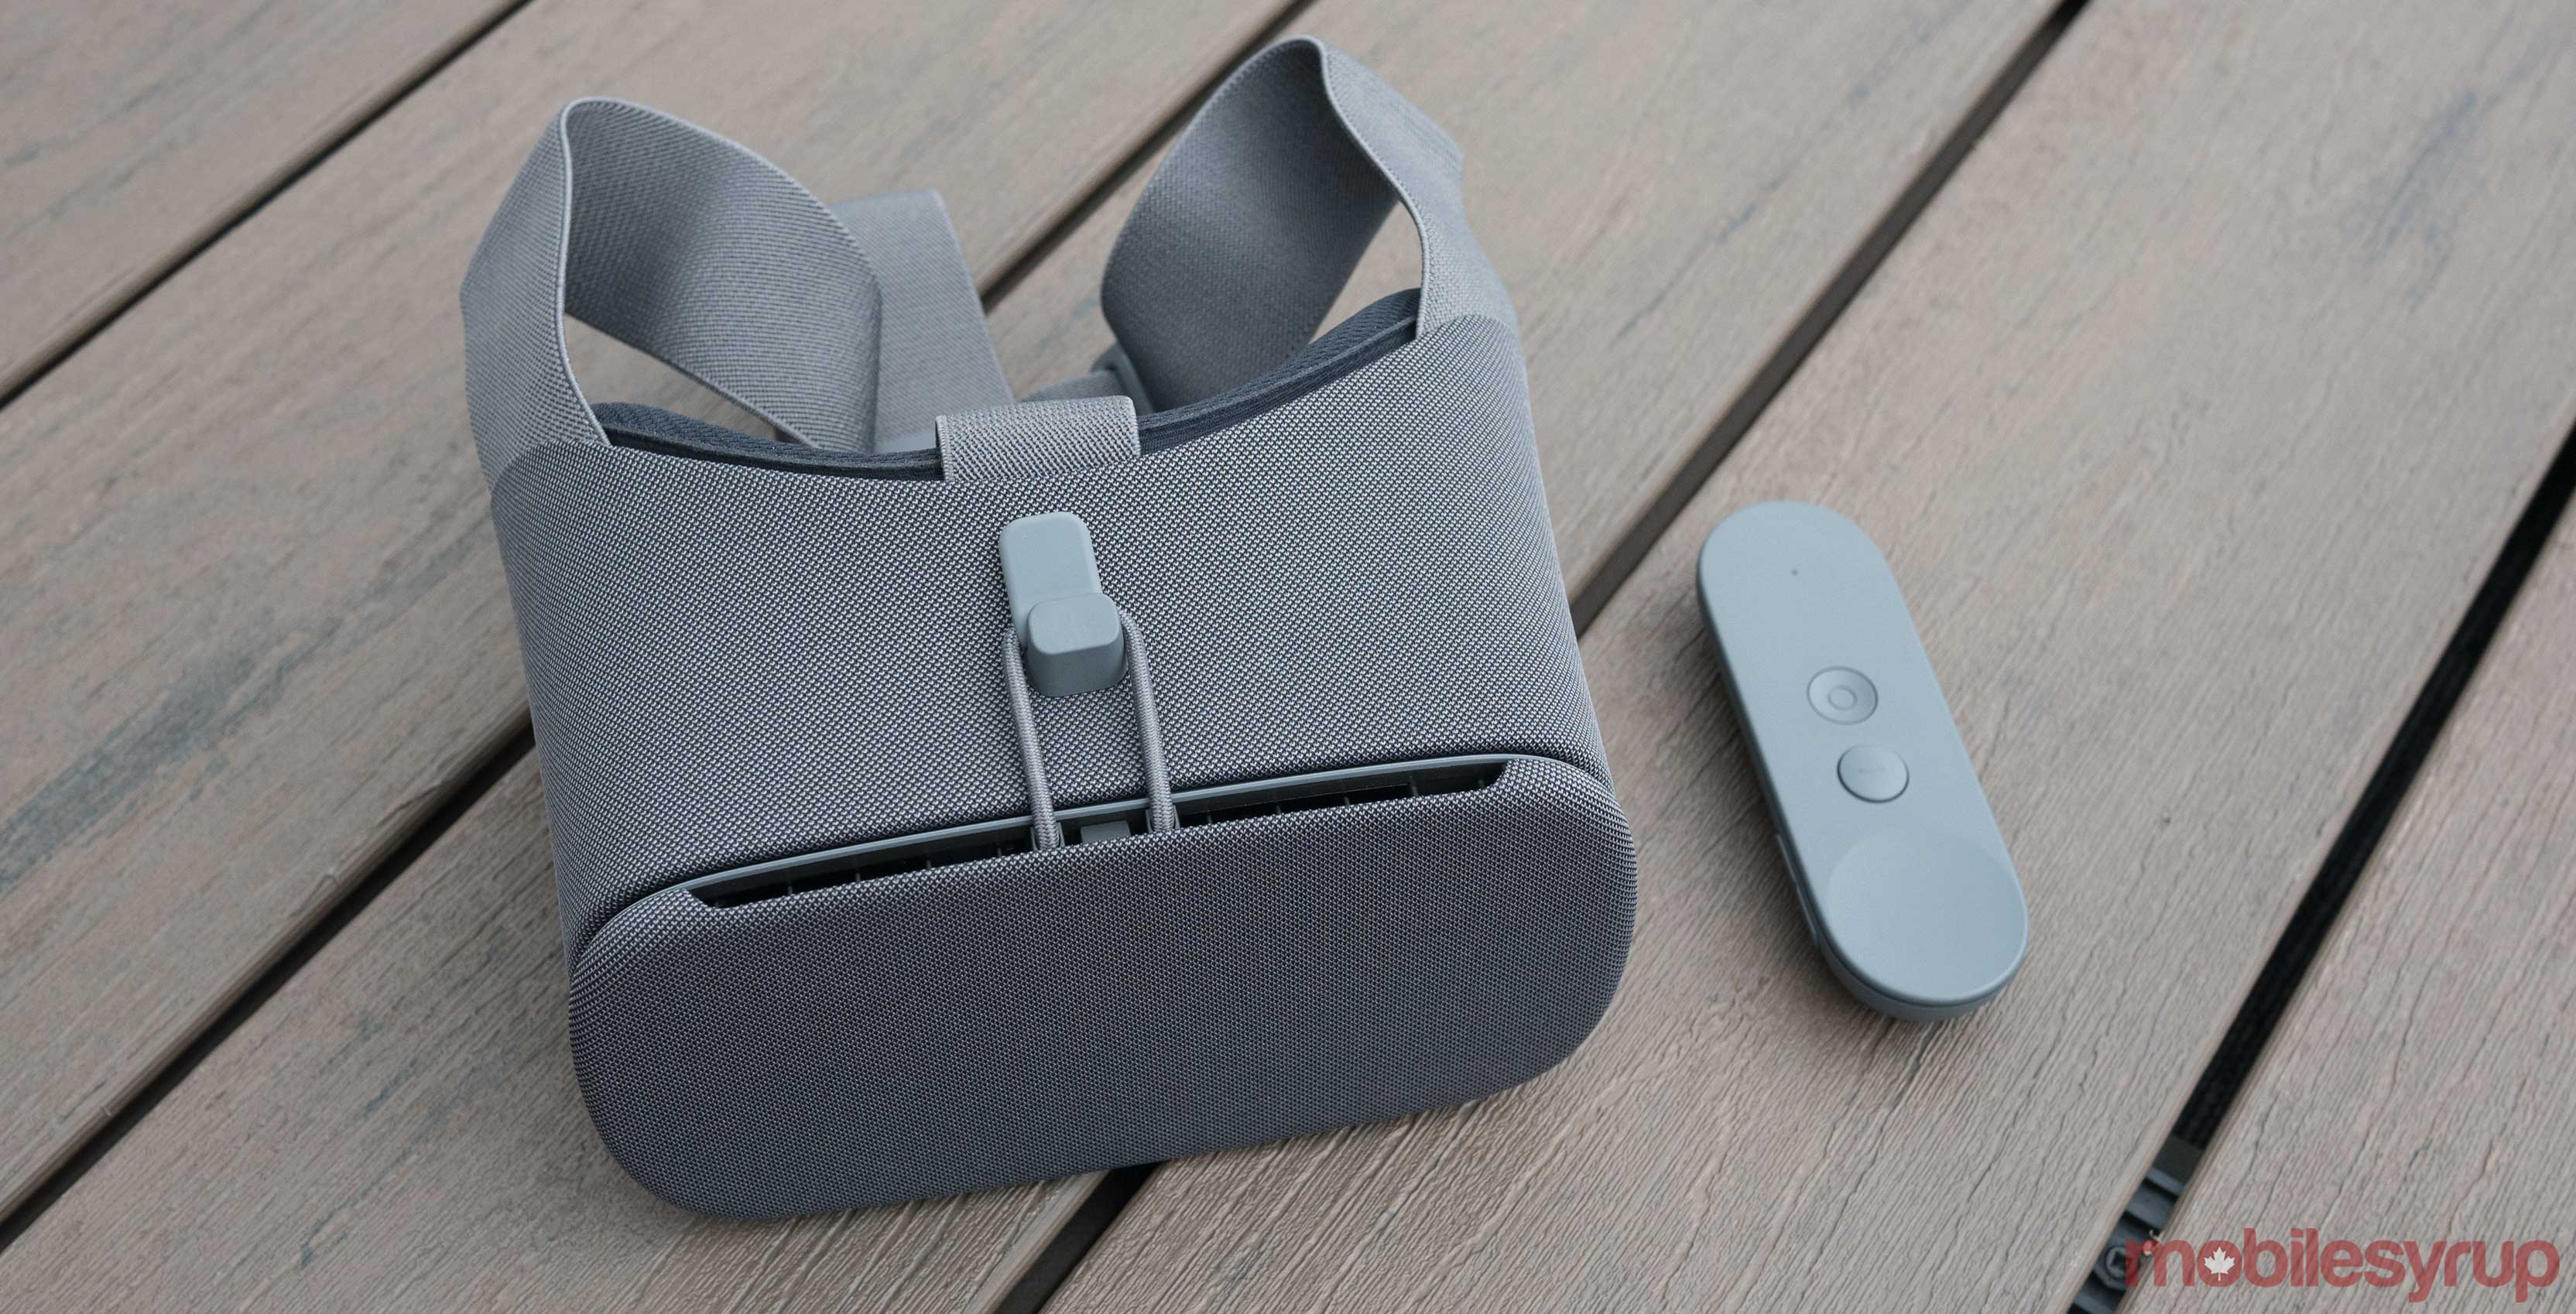 New Daydream View